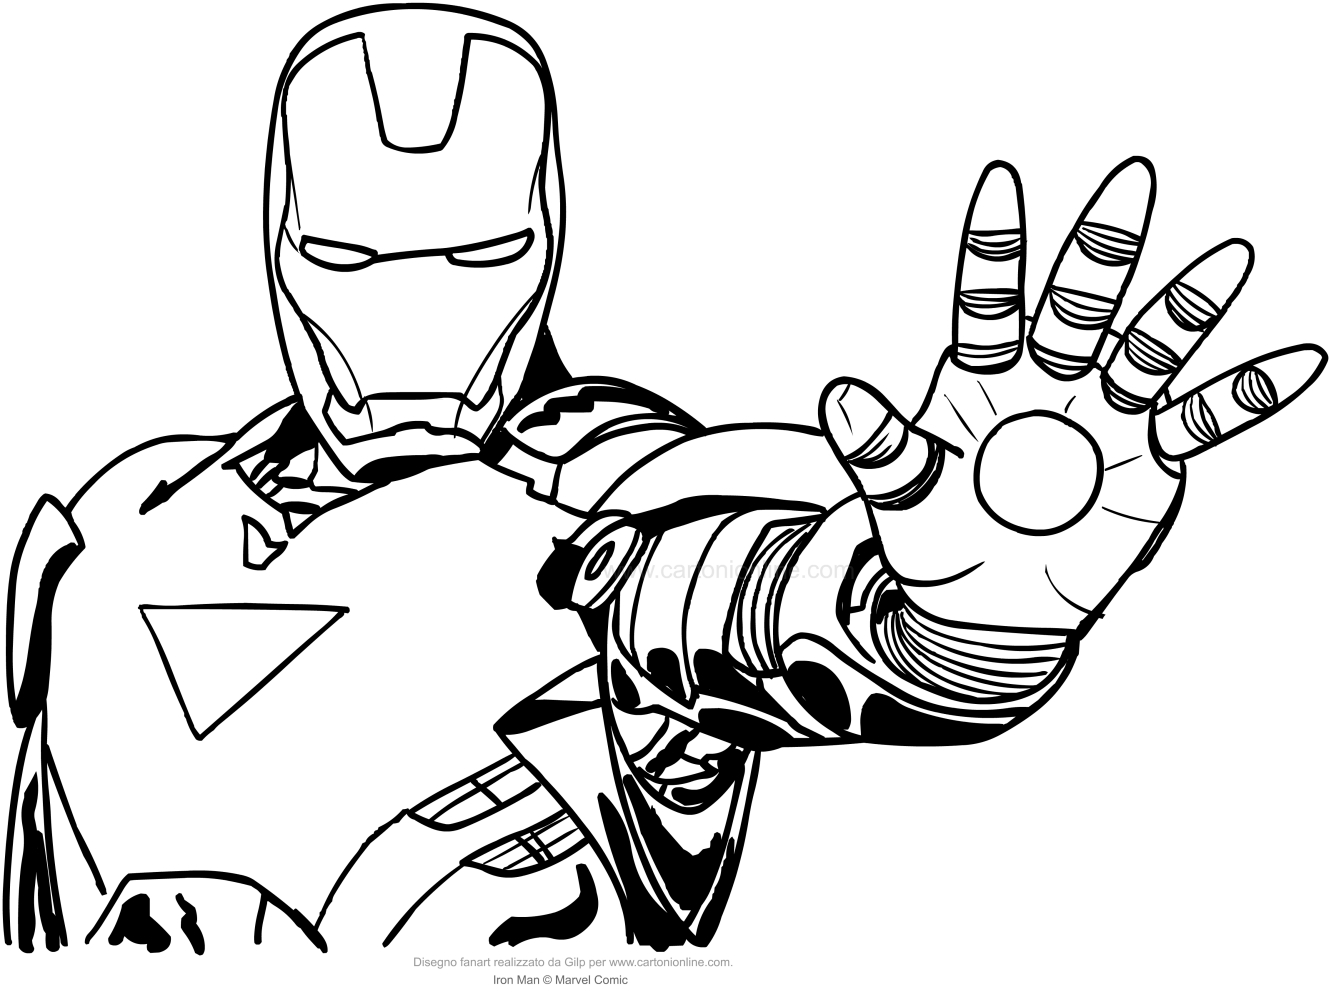 Disegno di iron man a mezzo busto da colorare for Iron man da colorare